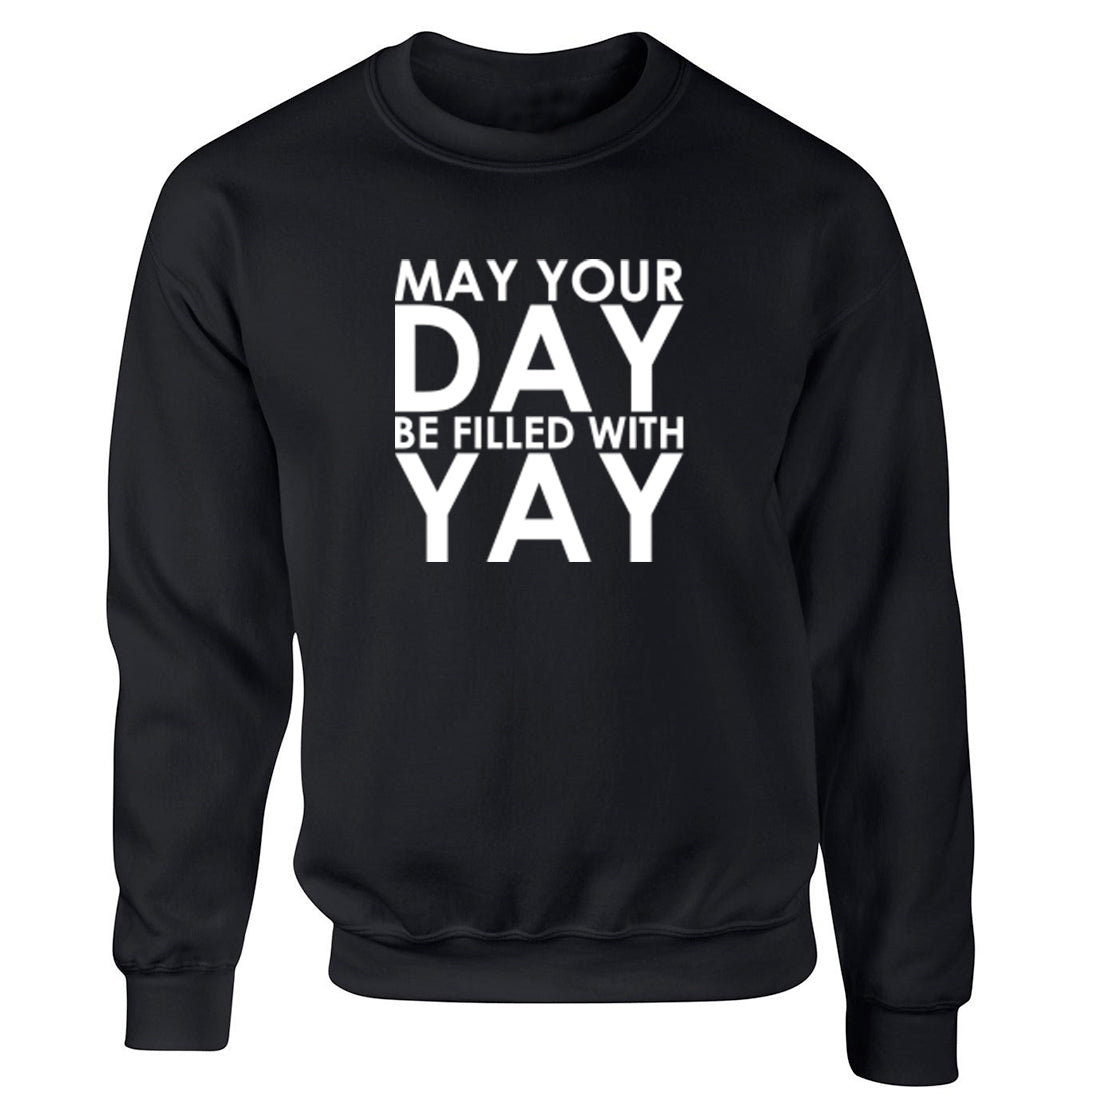 May Your Day Be Filled With Yay Unisex Jumper K1988 - Illustrated Identity Ltd.